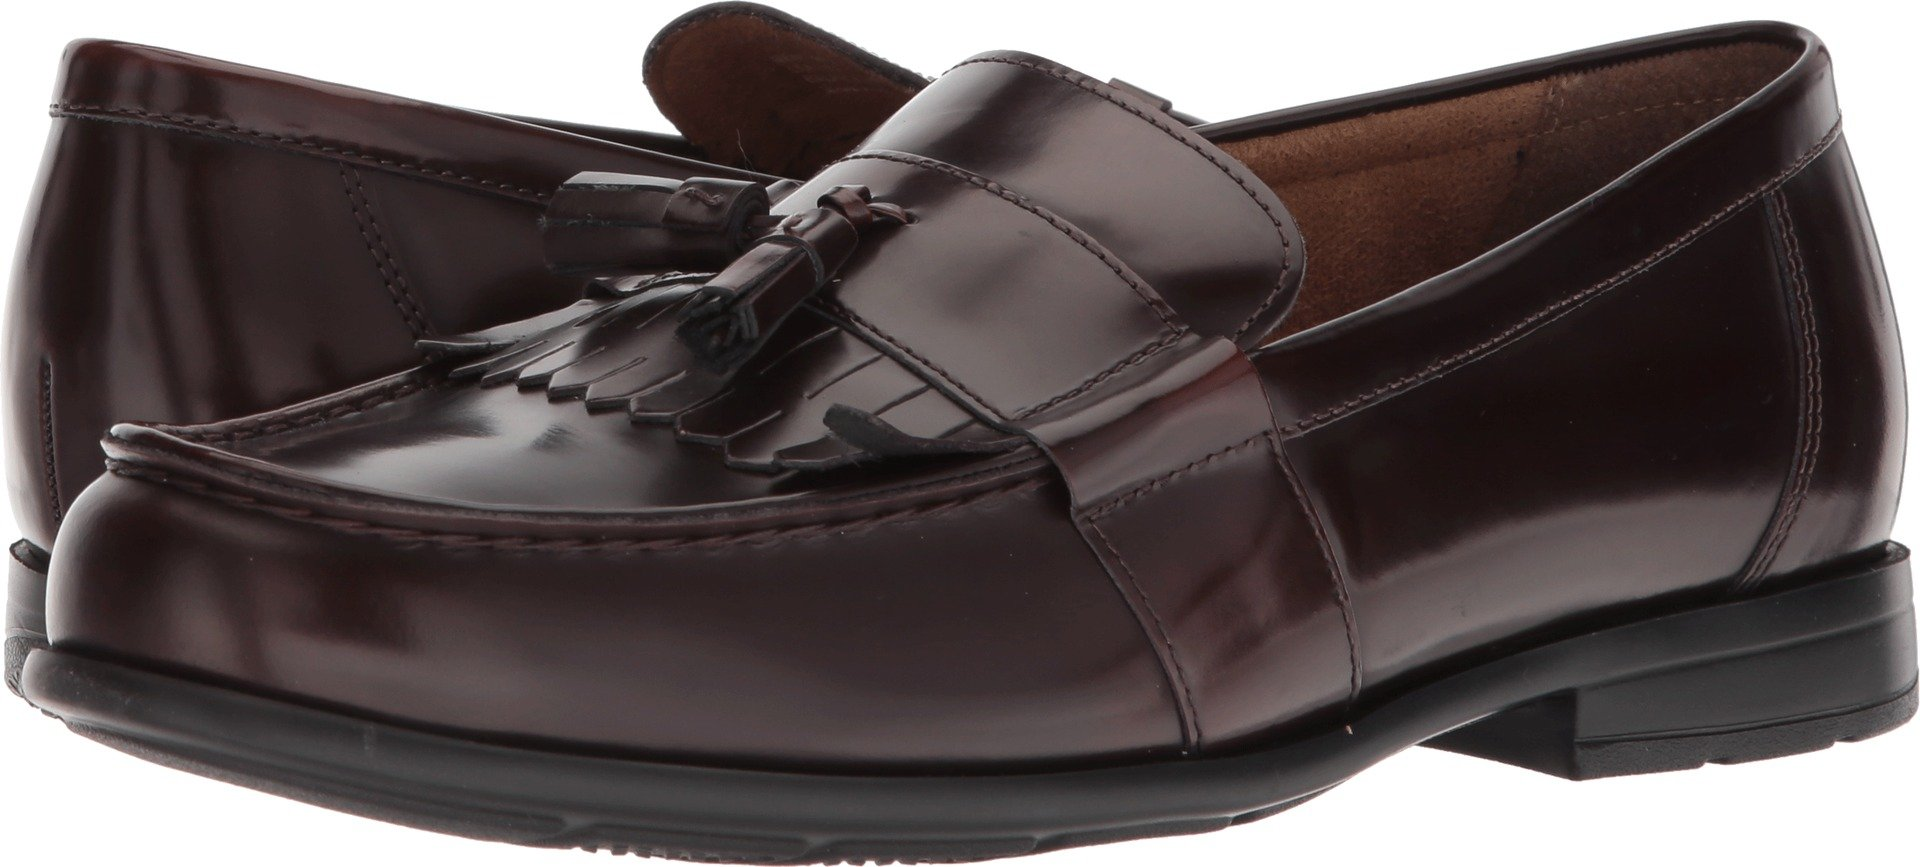 Nunn Bush Men's Denzel Moc Toe Kiltie Tassel Slip-On Loafer, Burgundy, 11 Wide US